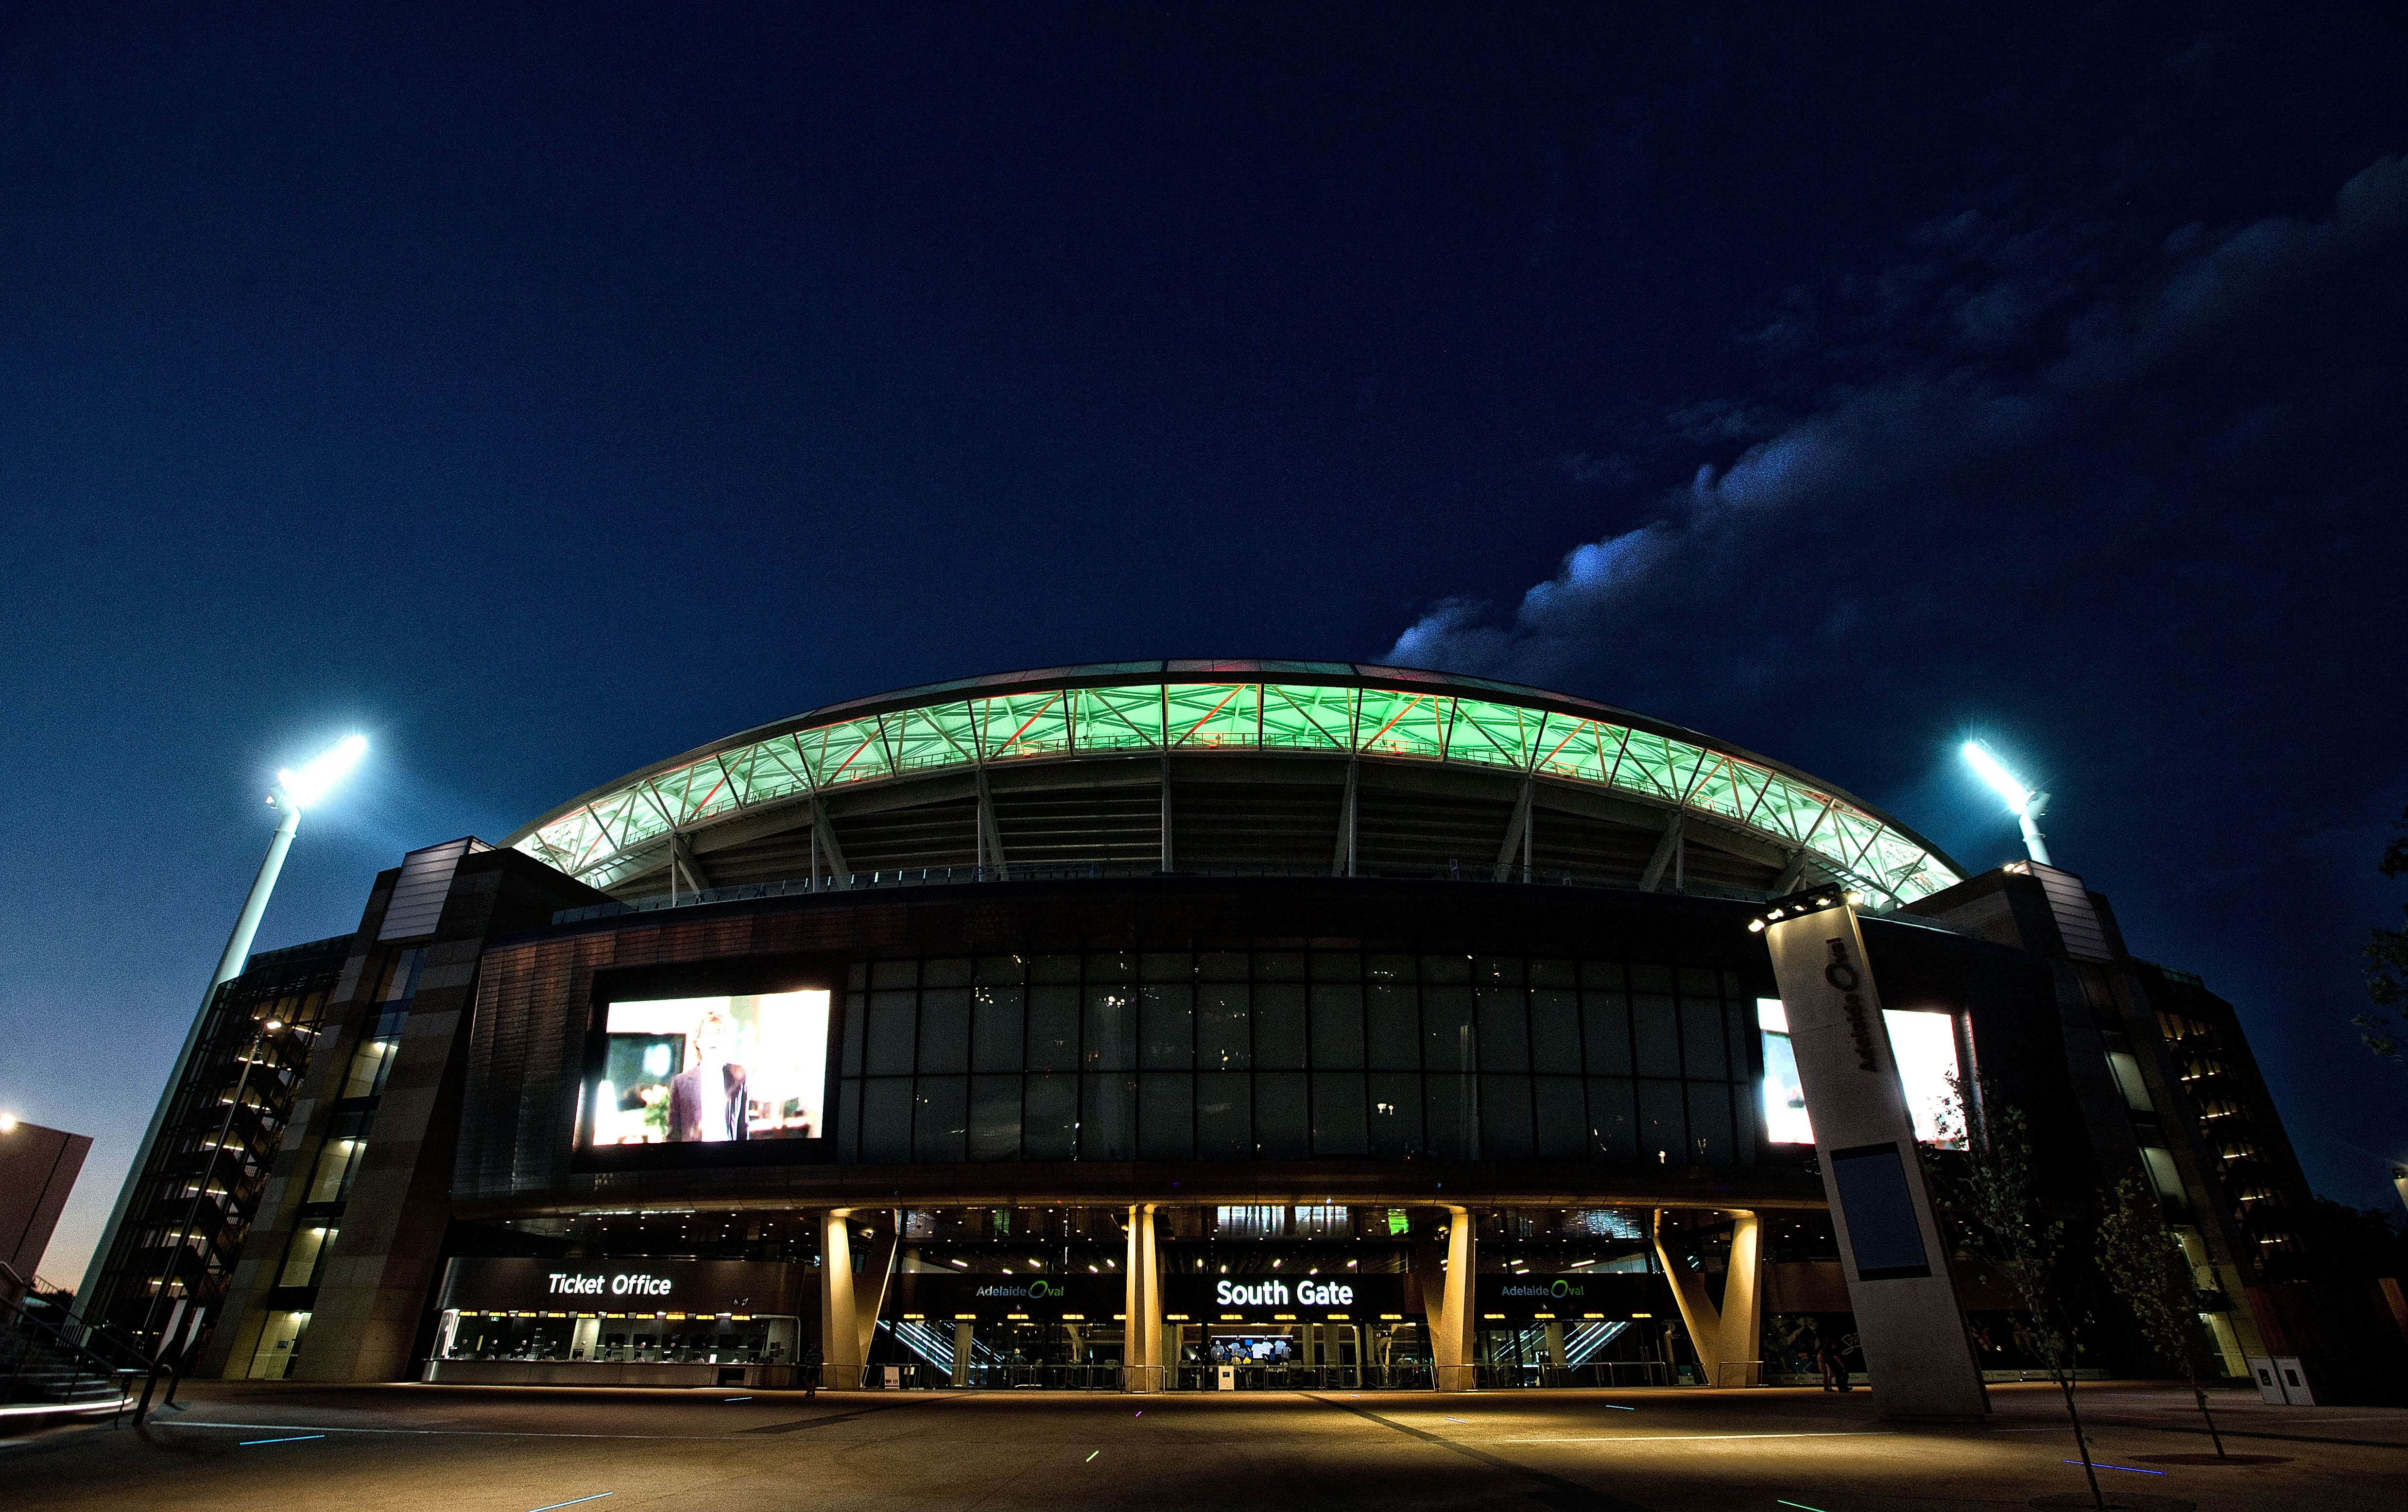 New adelaide oval pictures 2008 s Fashion, Hair Beauty Trends - m